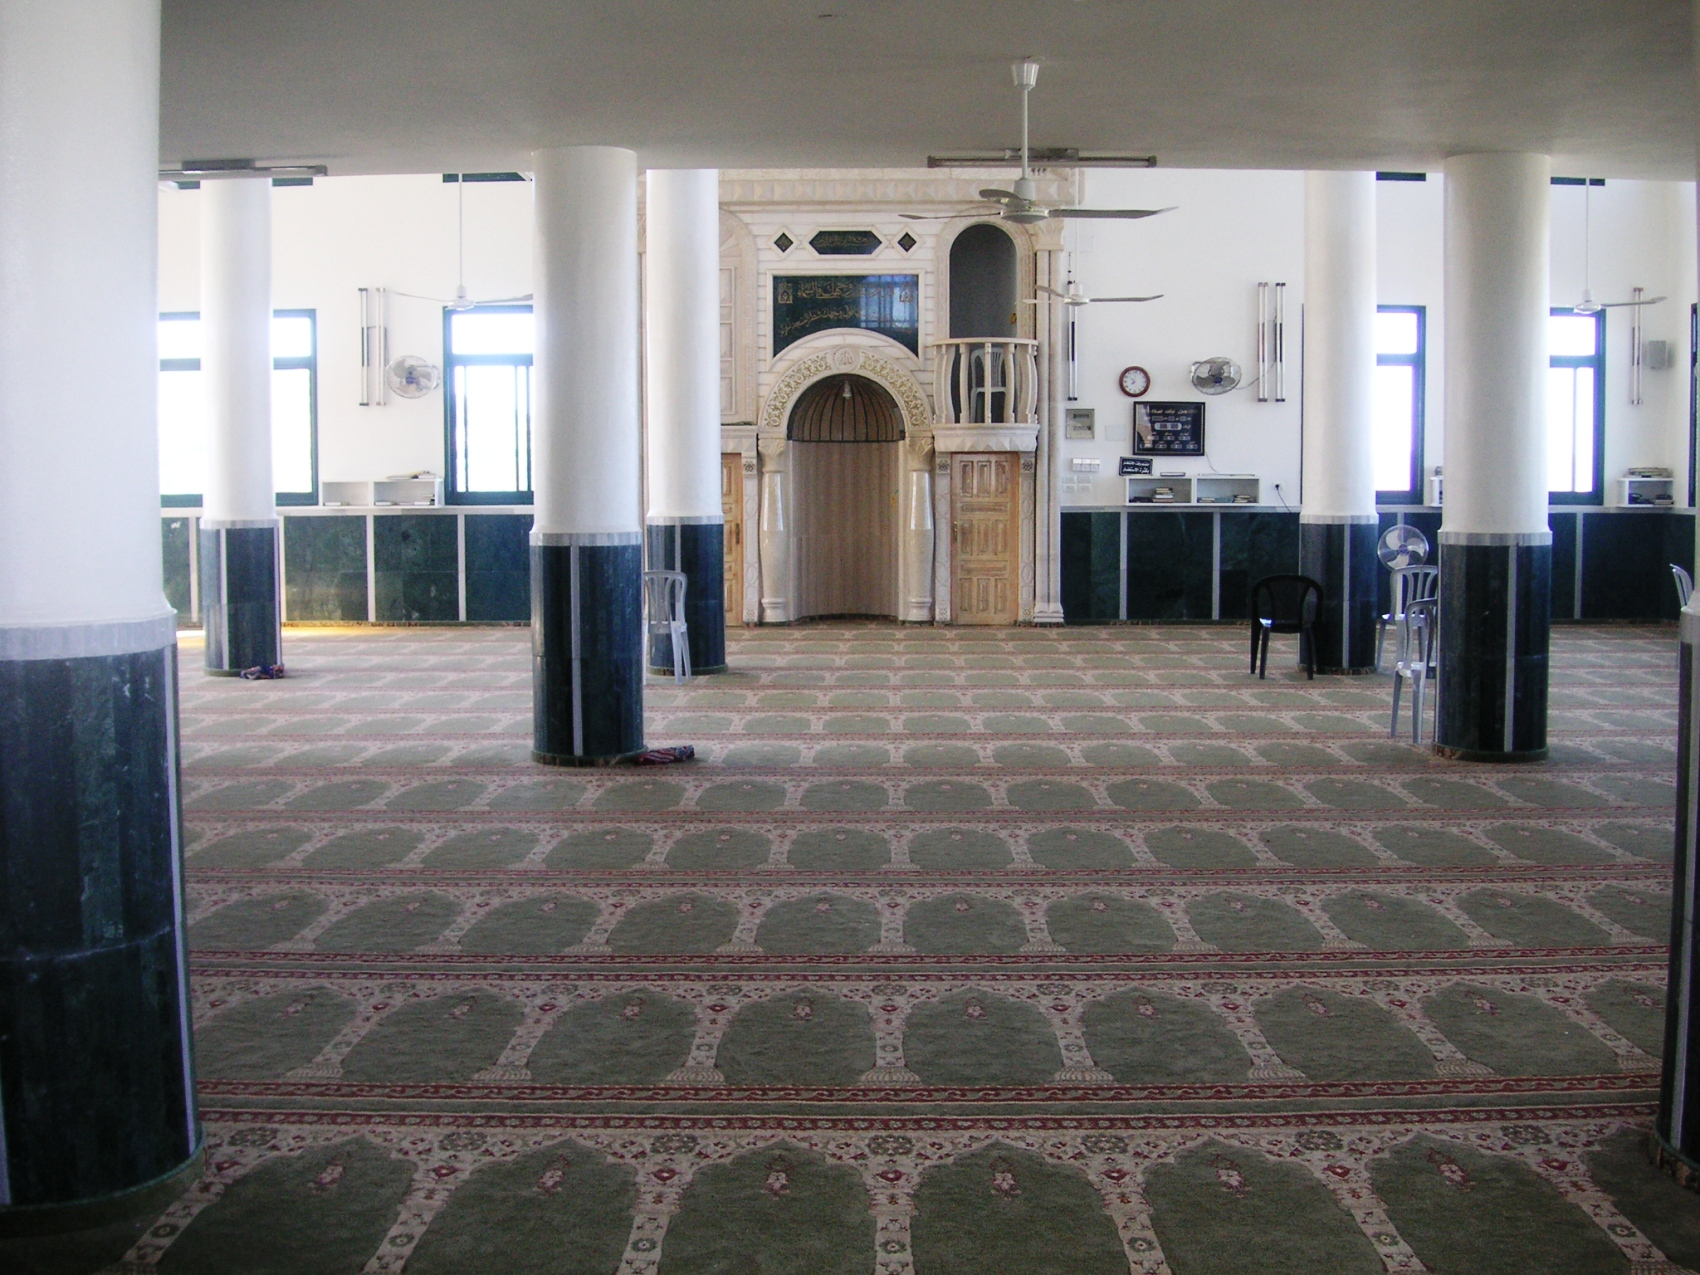 'Asira al-Qibliya - عصيره القبليّه : Masjid Asira - Inside - Picture taken by Mahmoud Makhlouf